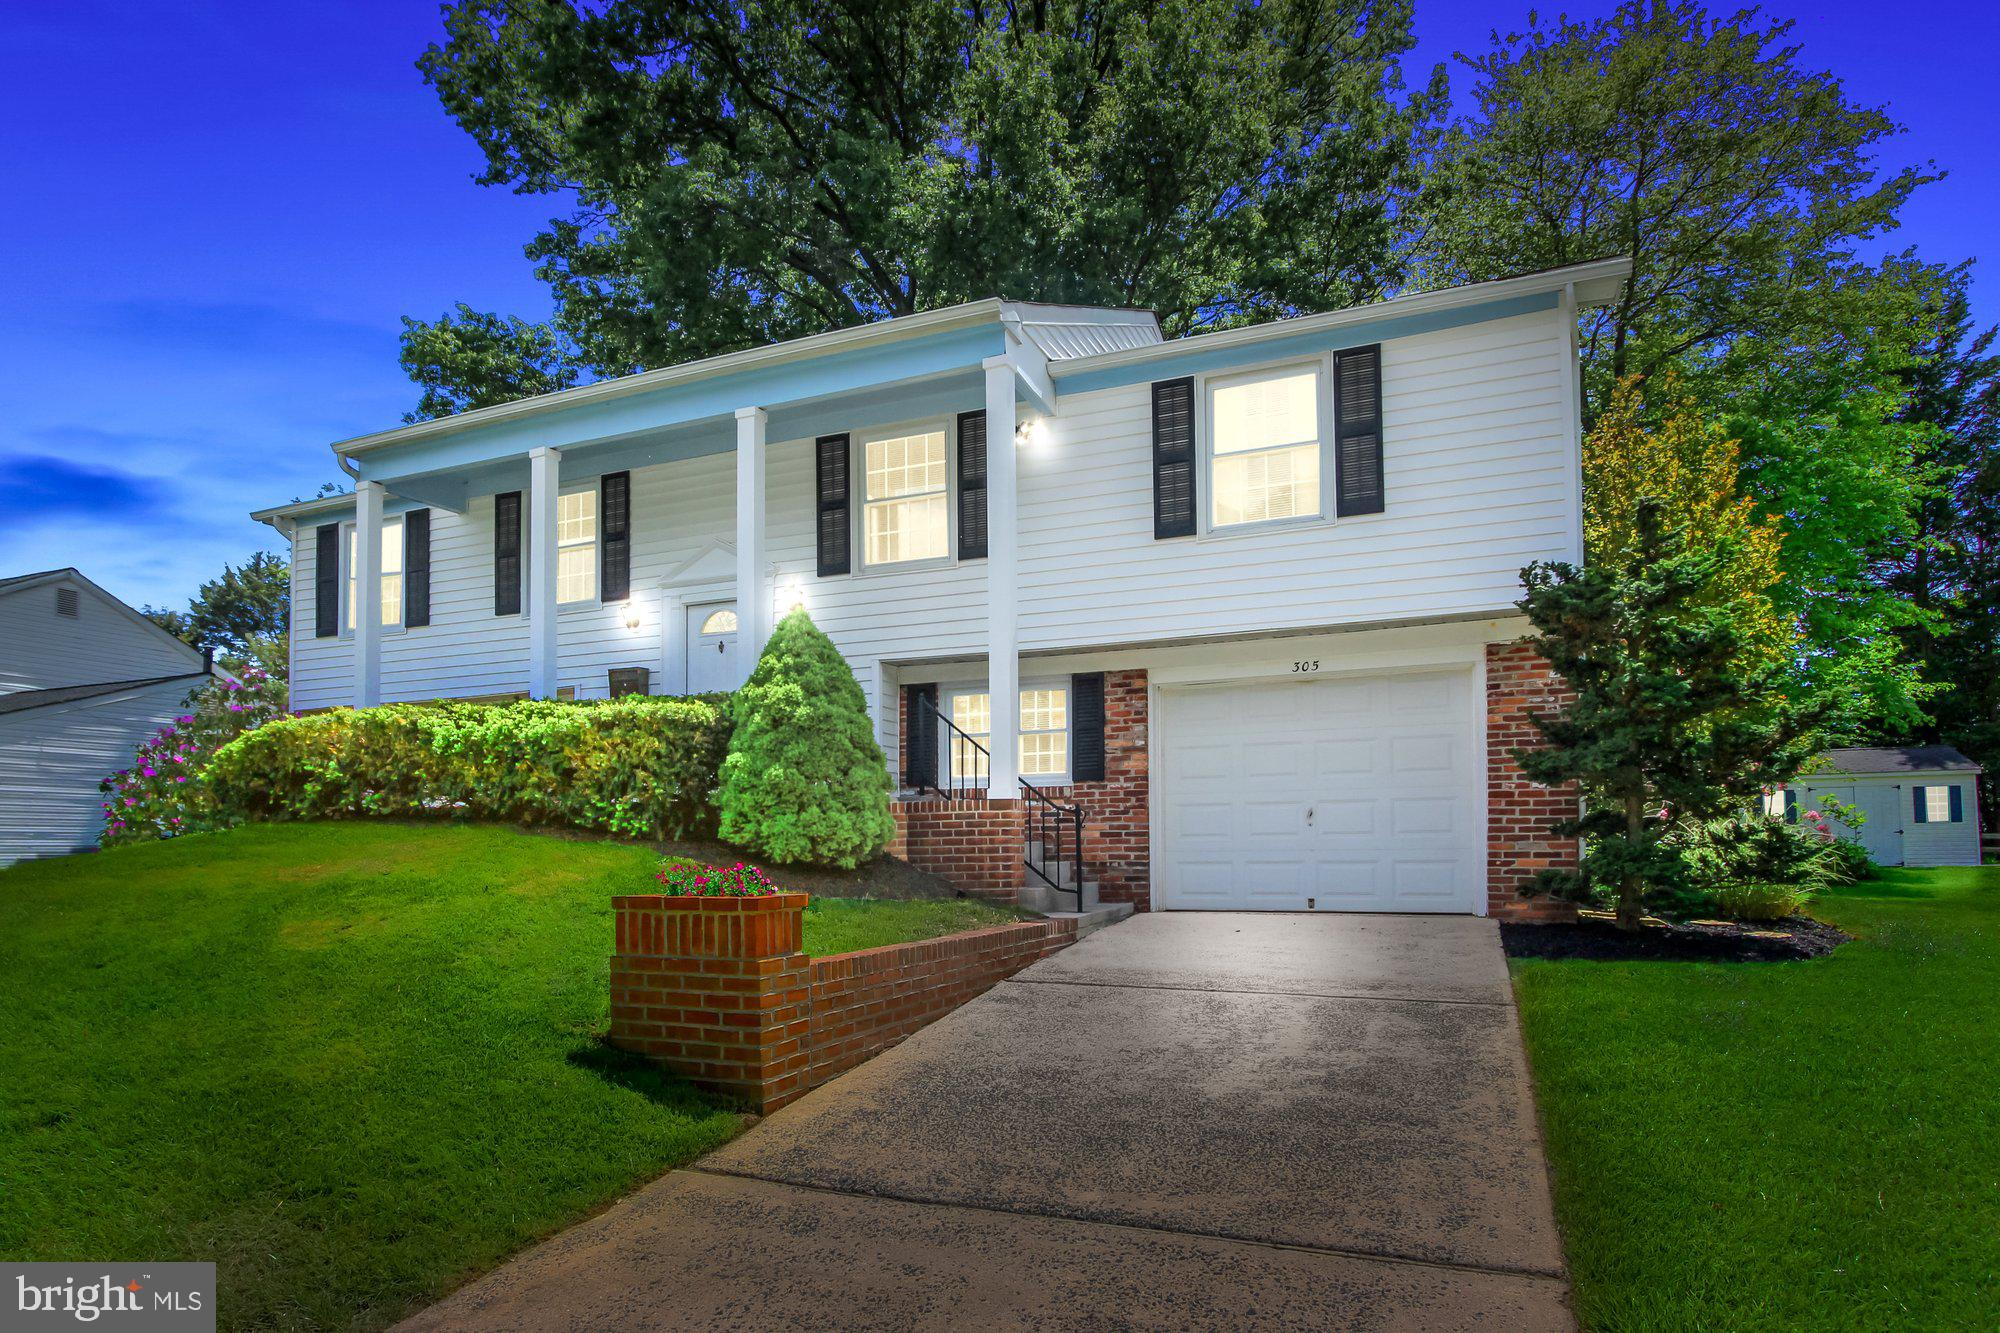 This great  4 Bedroom, 3 Bath gem is located in desirable Foster Branch development located minutes